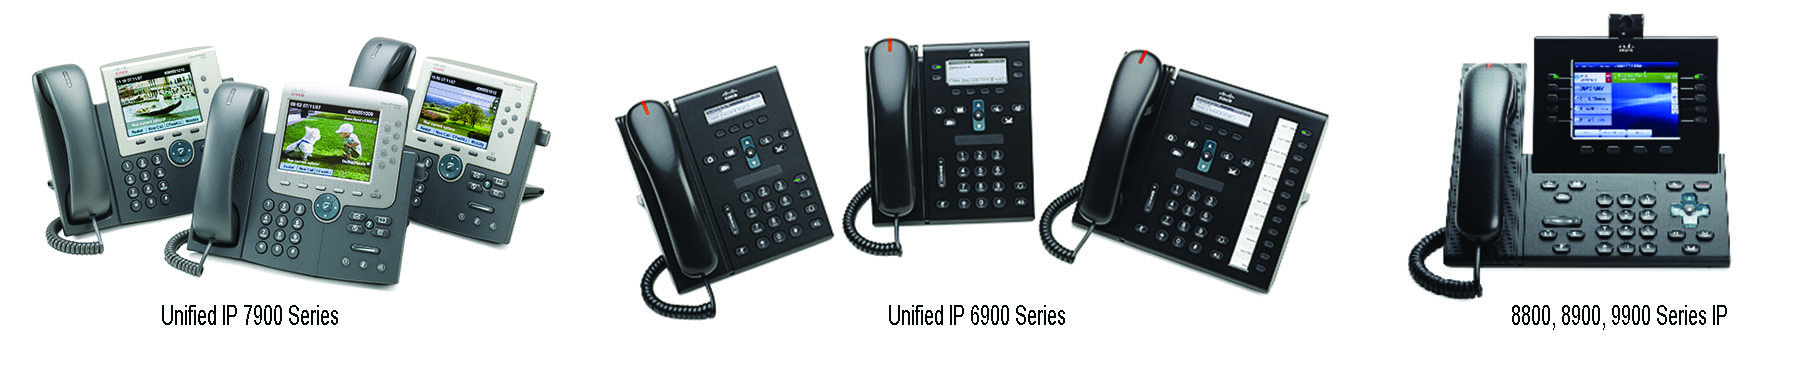 Which type of Cisco phone do you have?